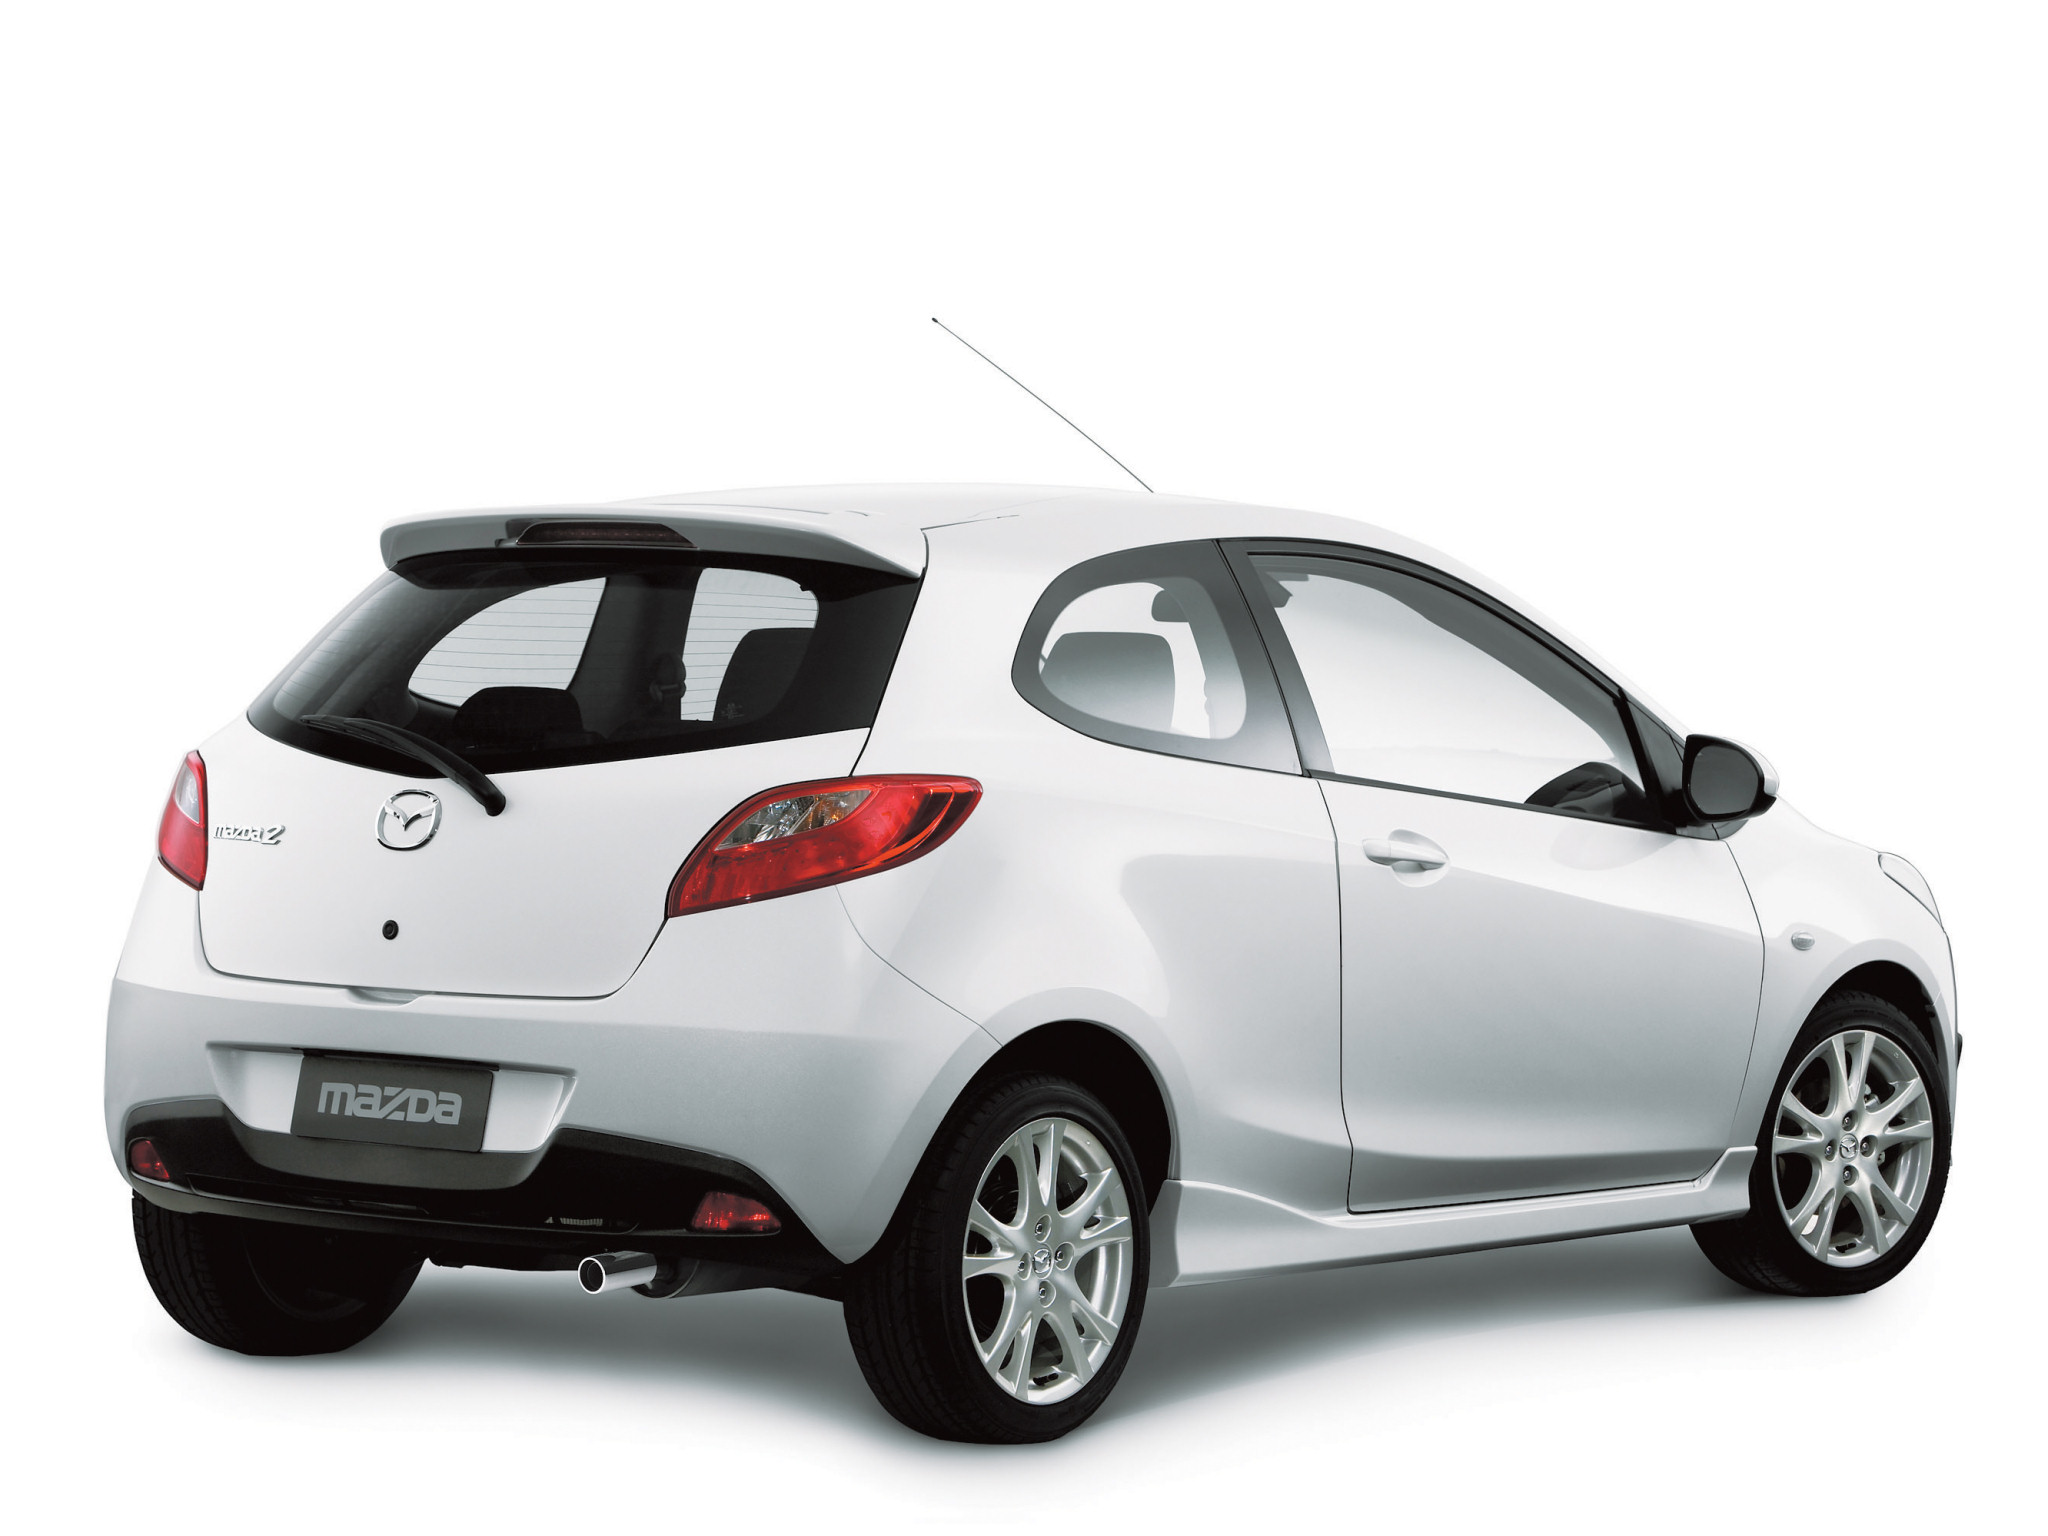 mazda 2 sport 3door 2008 mazda 2 sport 3door 2008 photo 07 car in pictures car photo gallery. Black Bedroom Furniture Sets. Home Design Ideas